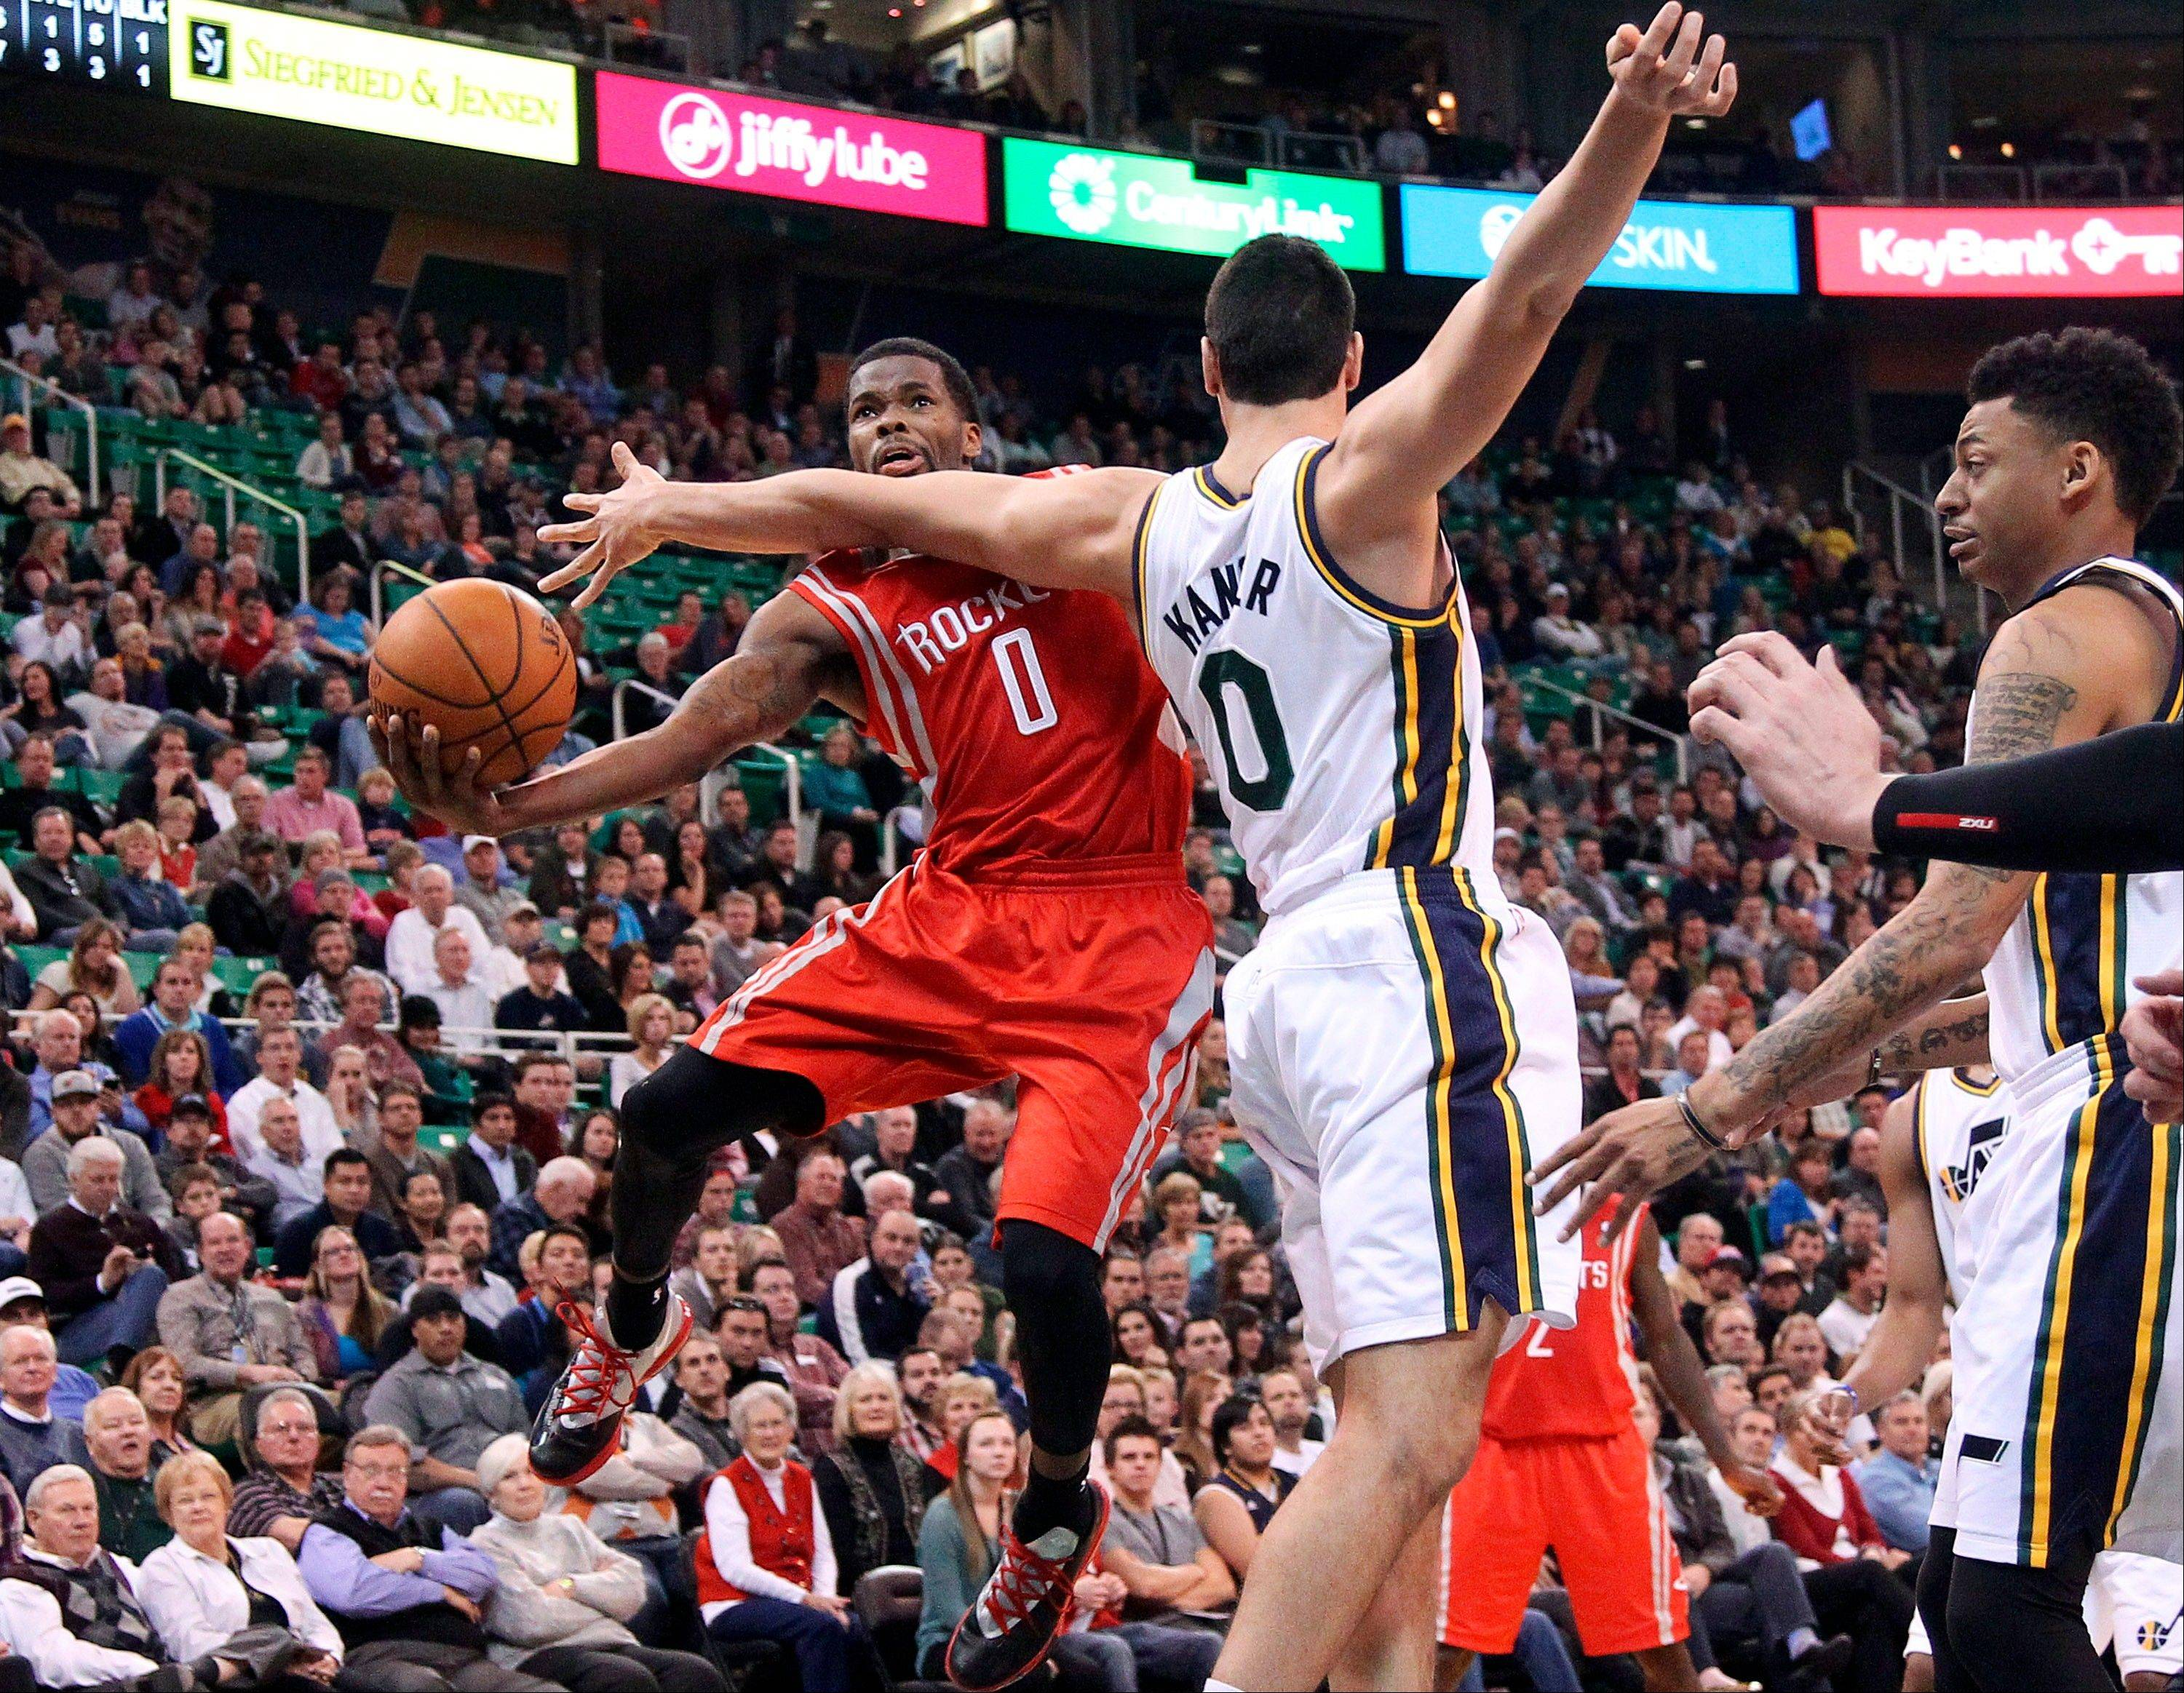 Houston Rockets� Aaron Brooks, left, goes to the basket as Utah Jazz�s Enes Kanter (0) defends in the second quarter of an NBA basketball game Monday in Salt Lake City.